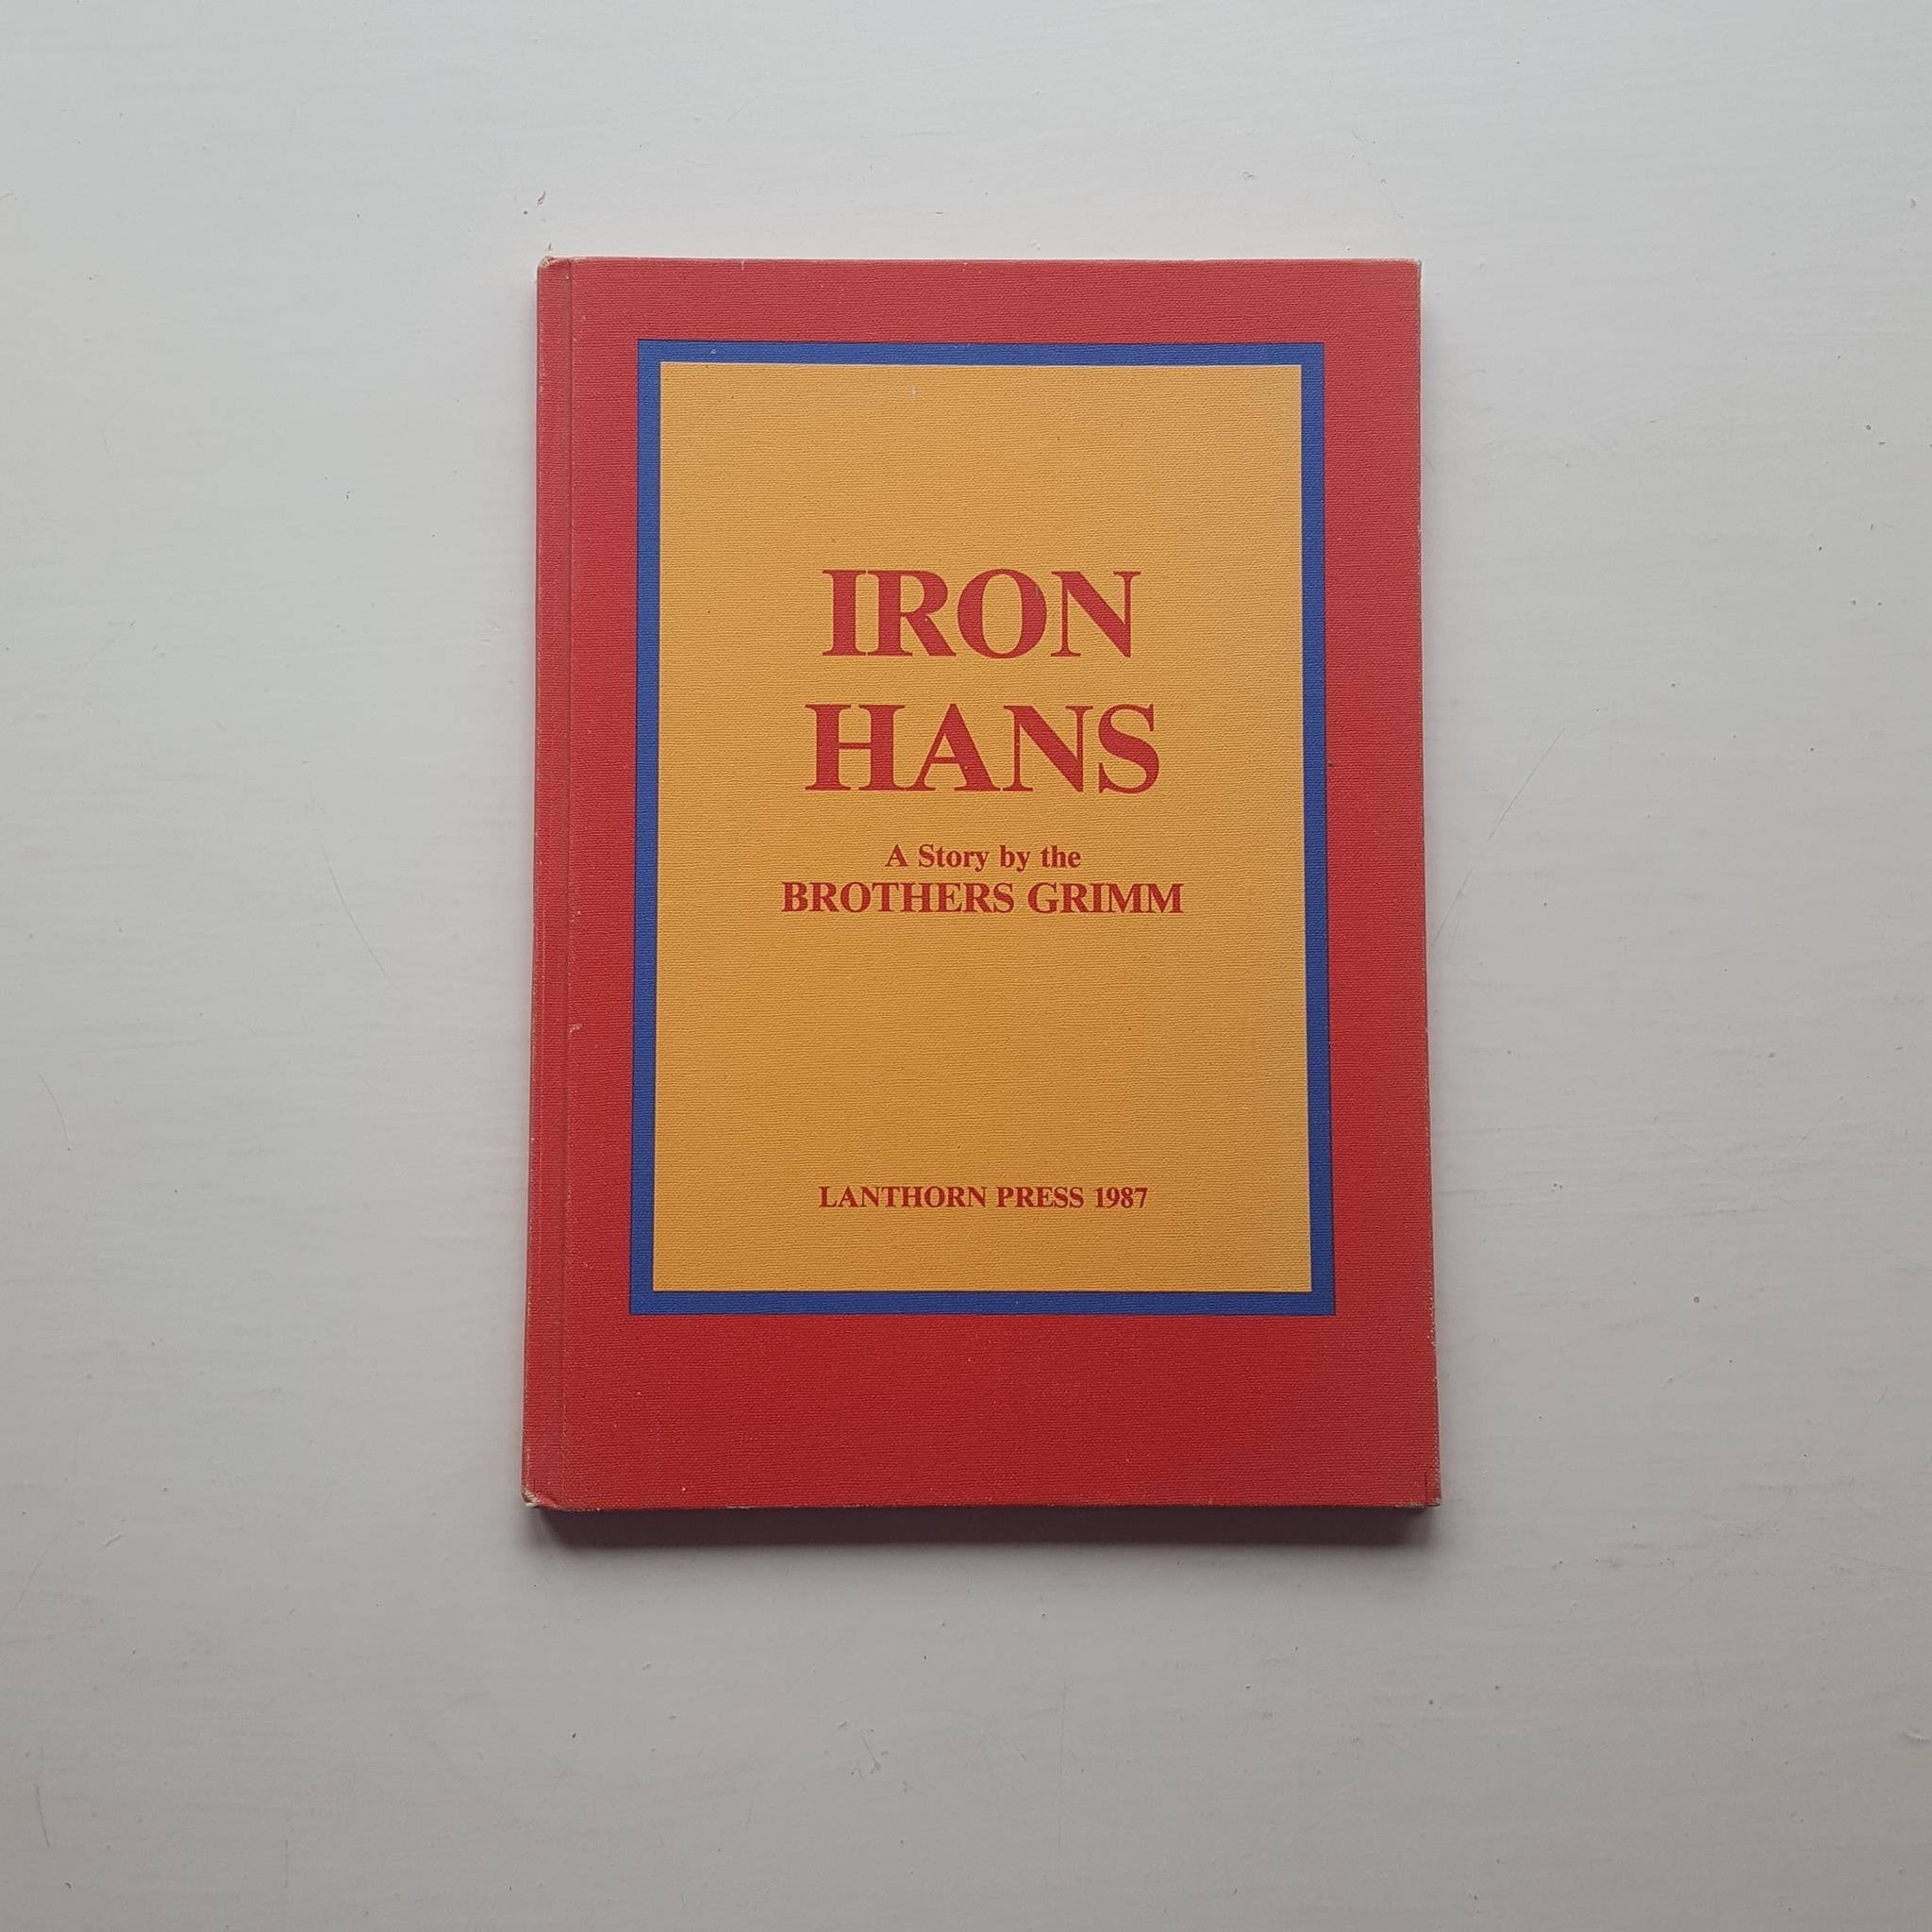 Iron Hans by The Brothers Grimm